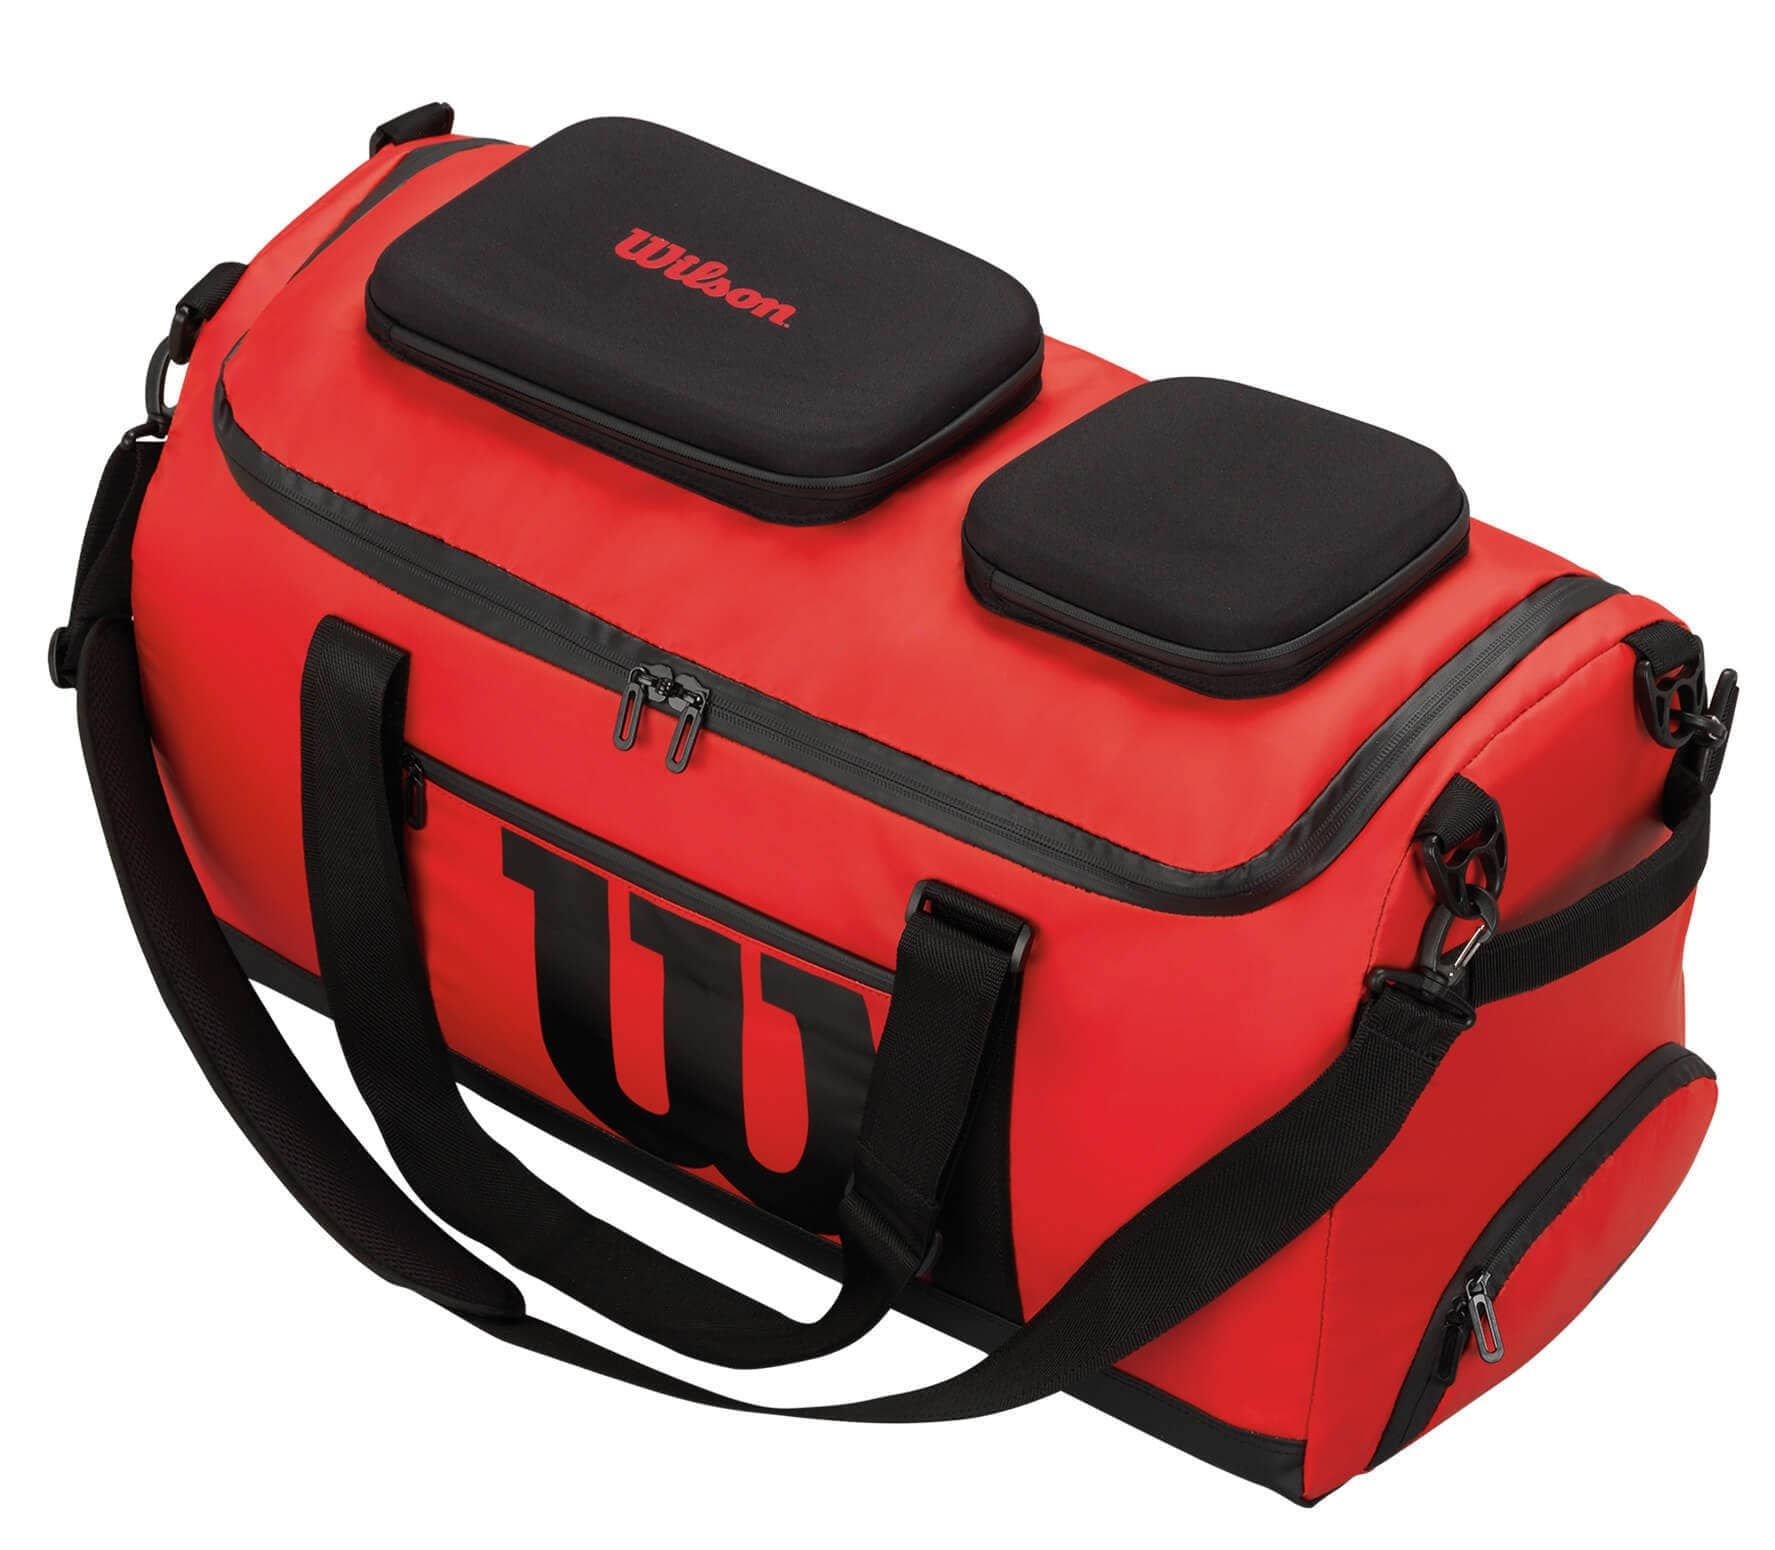 94c95b6e14 Wilson - Tech duffel bag tennis bag (red black) - buy it at the ...